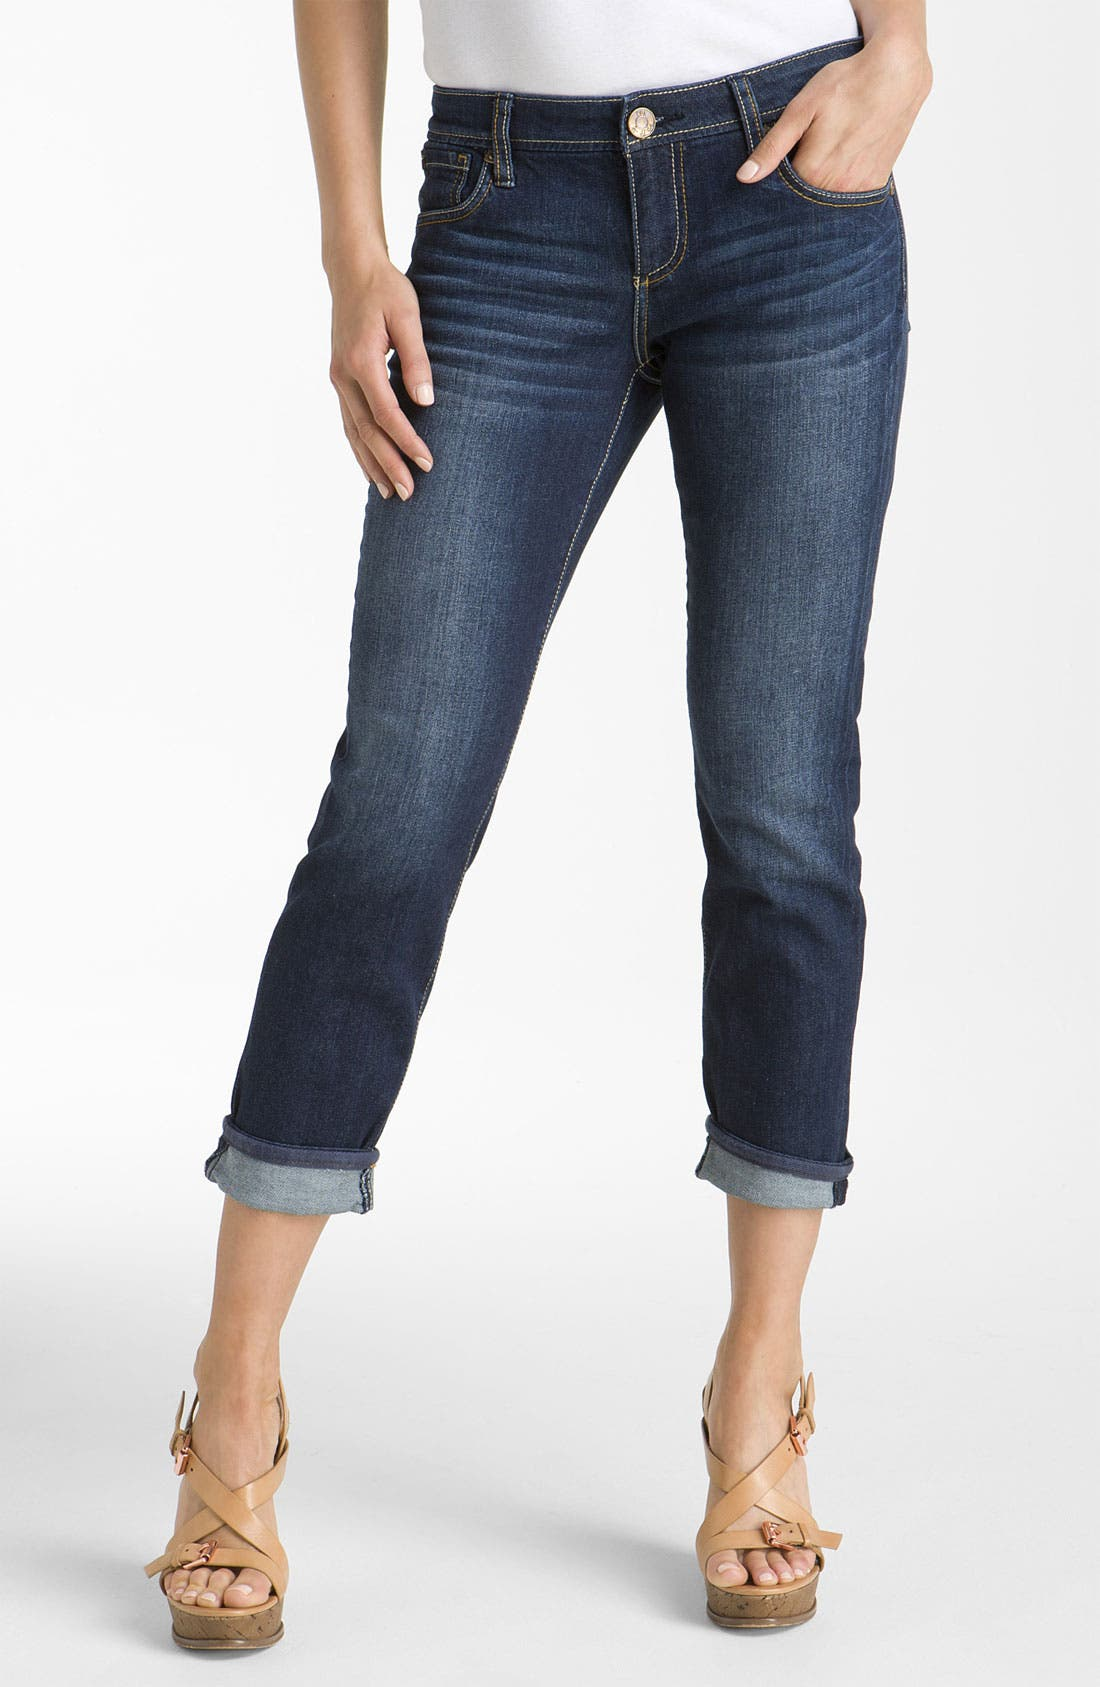 Main Image - KUT from the Kloth 'Catherine' Slim Boyfriend Jeans (Gratitude Wash)